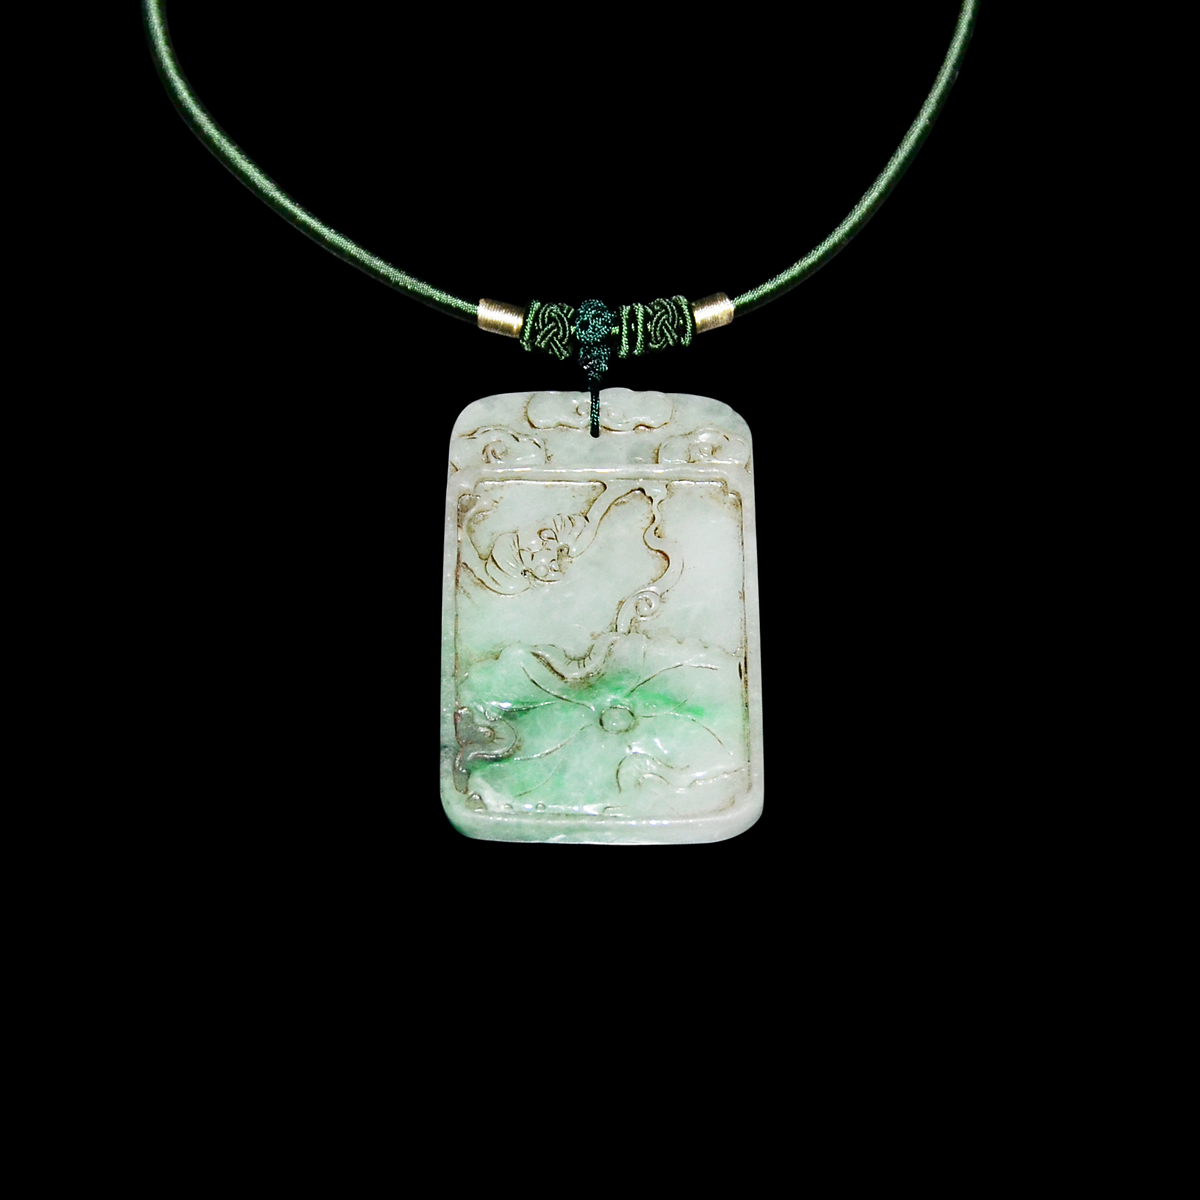 Lot 24 - 翠玉雙面雕荷葉如意蝠來珮 Jadeite Pendant Carved on Both Sides with Ruyi Lotus and Bat Motifs Signifying